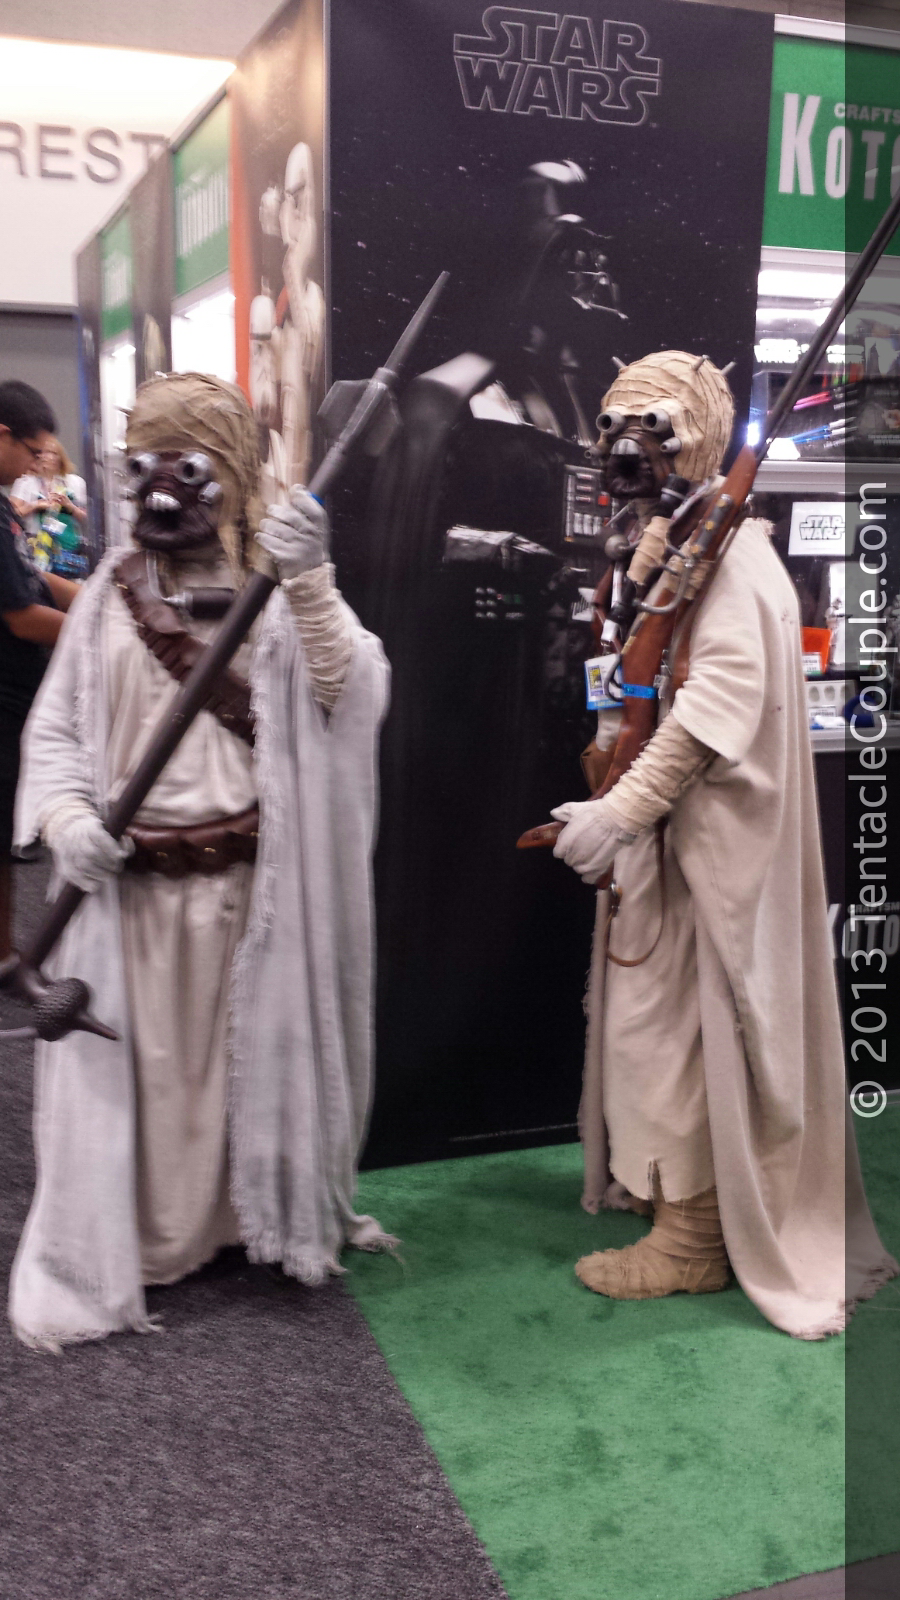 San Diego Comic-Con 2013 - Sand people don't always cover their tracks